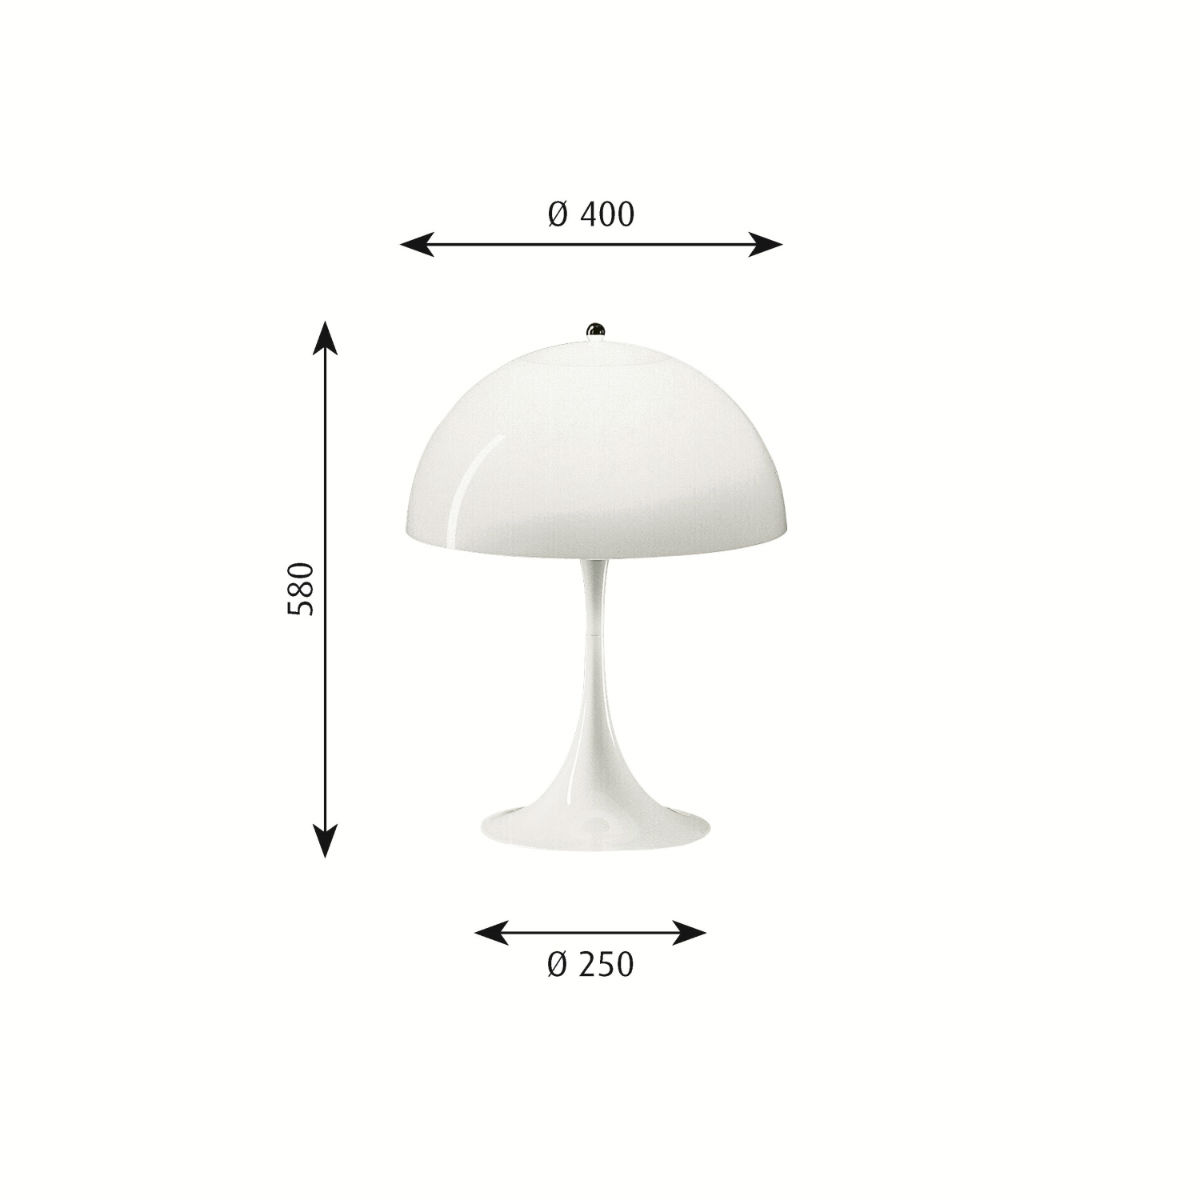 Lampe-table-Panthella-Verner-Panton-dimensions